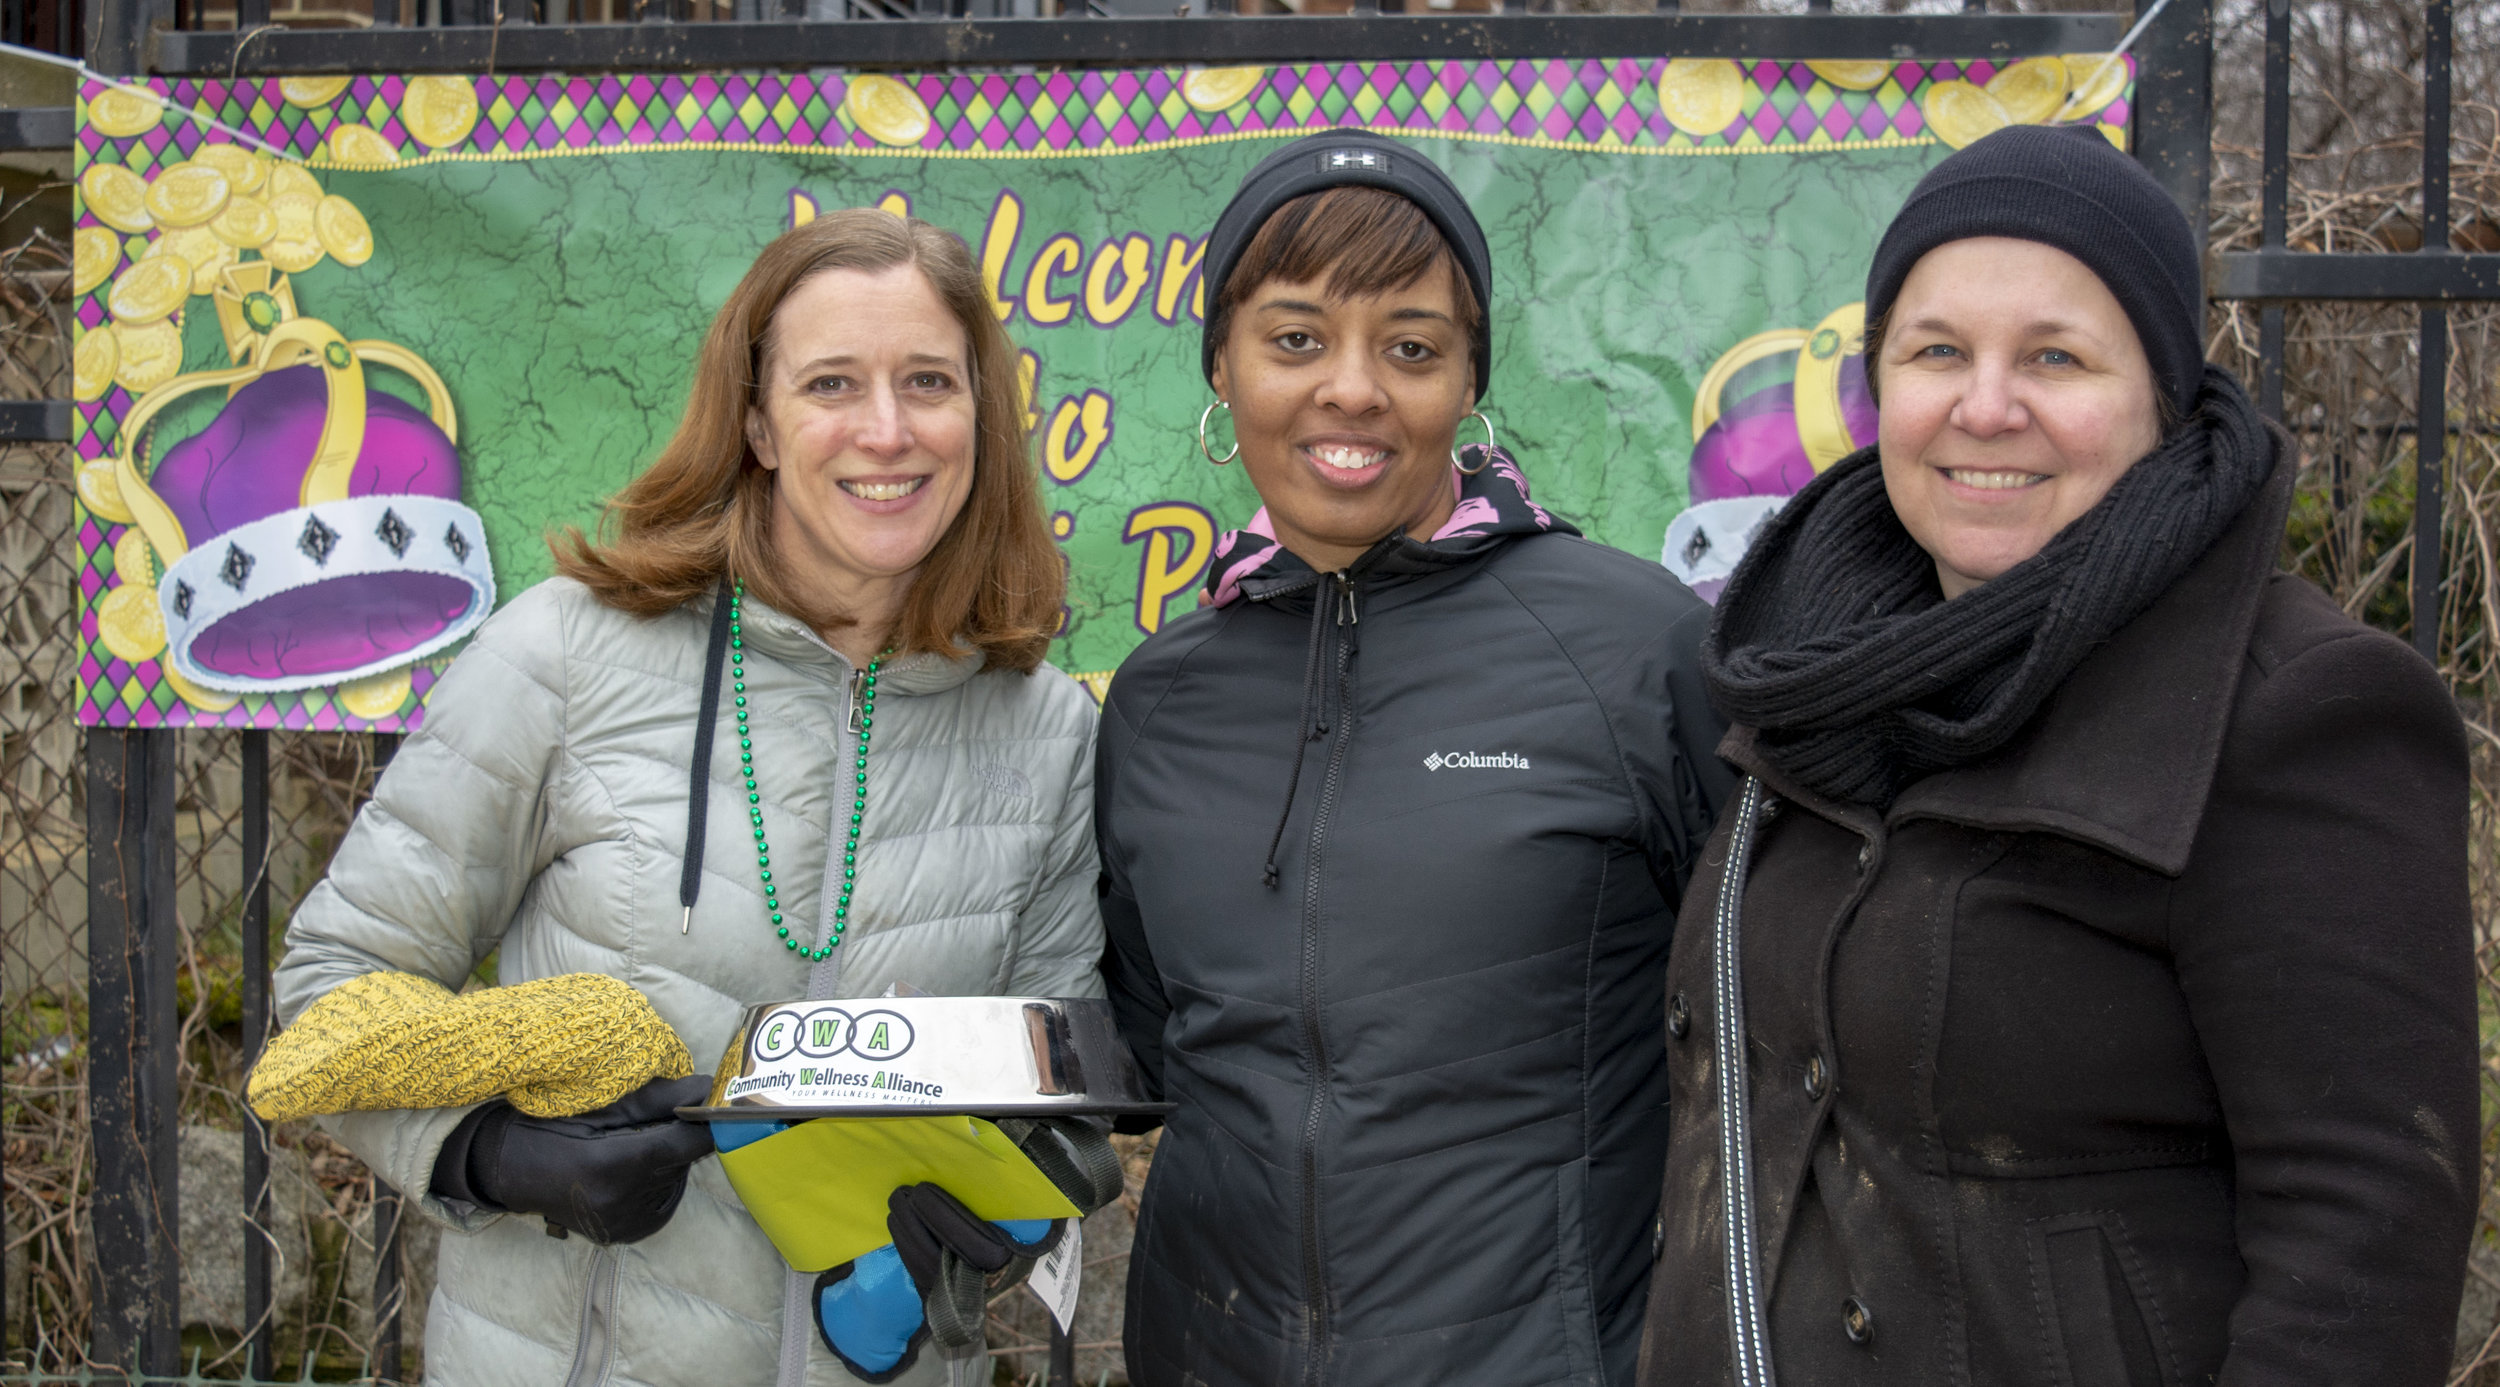 YaVonne Jackson Boyd of CWAC and the North Columbia Heights Civic Association with Lori Robertson and Eva Guenther of 11th and Bark